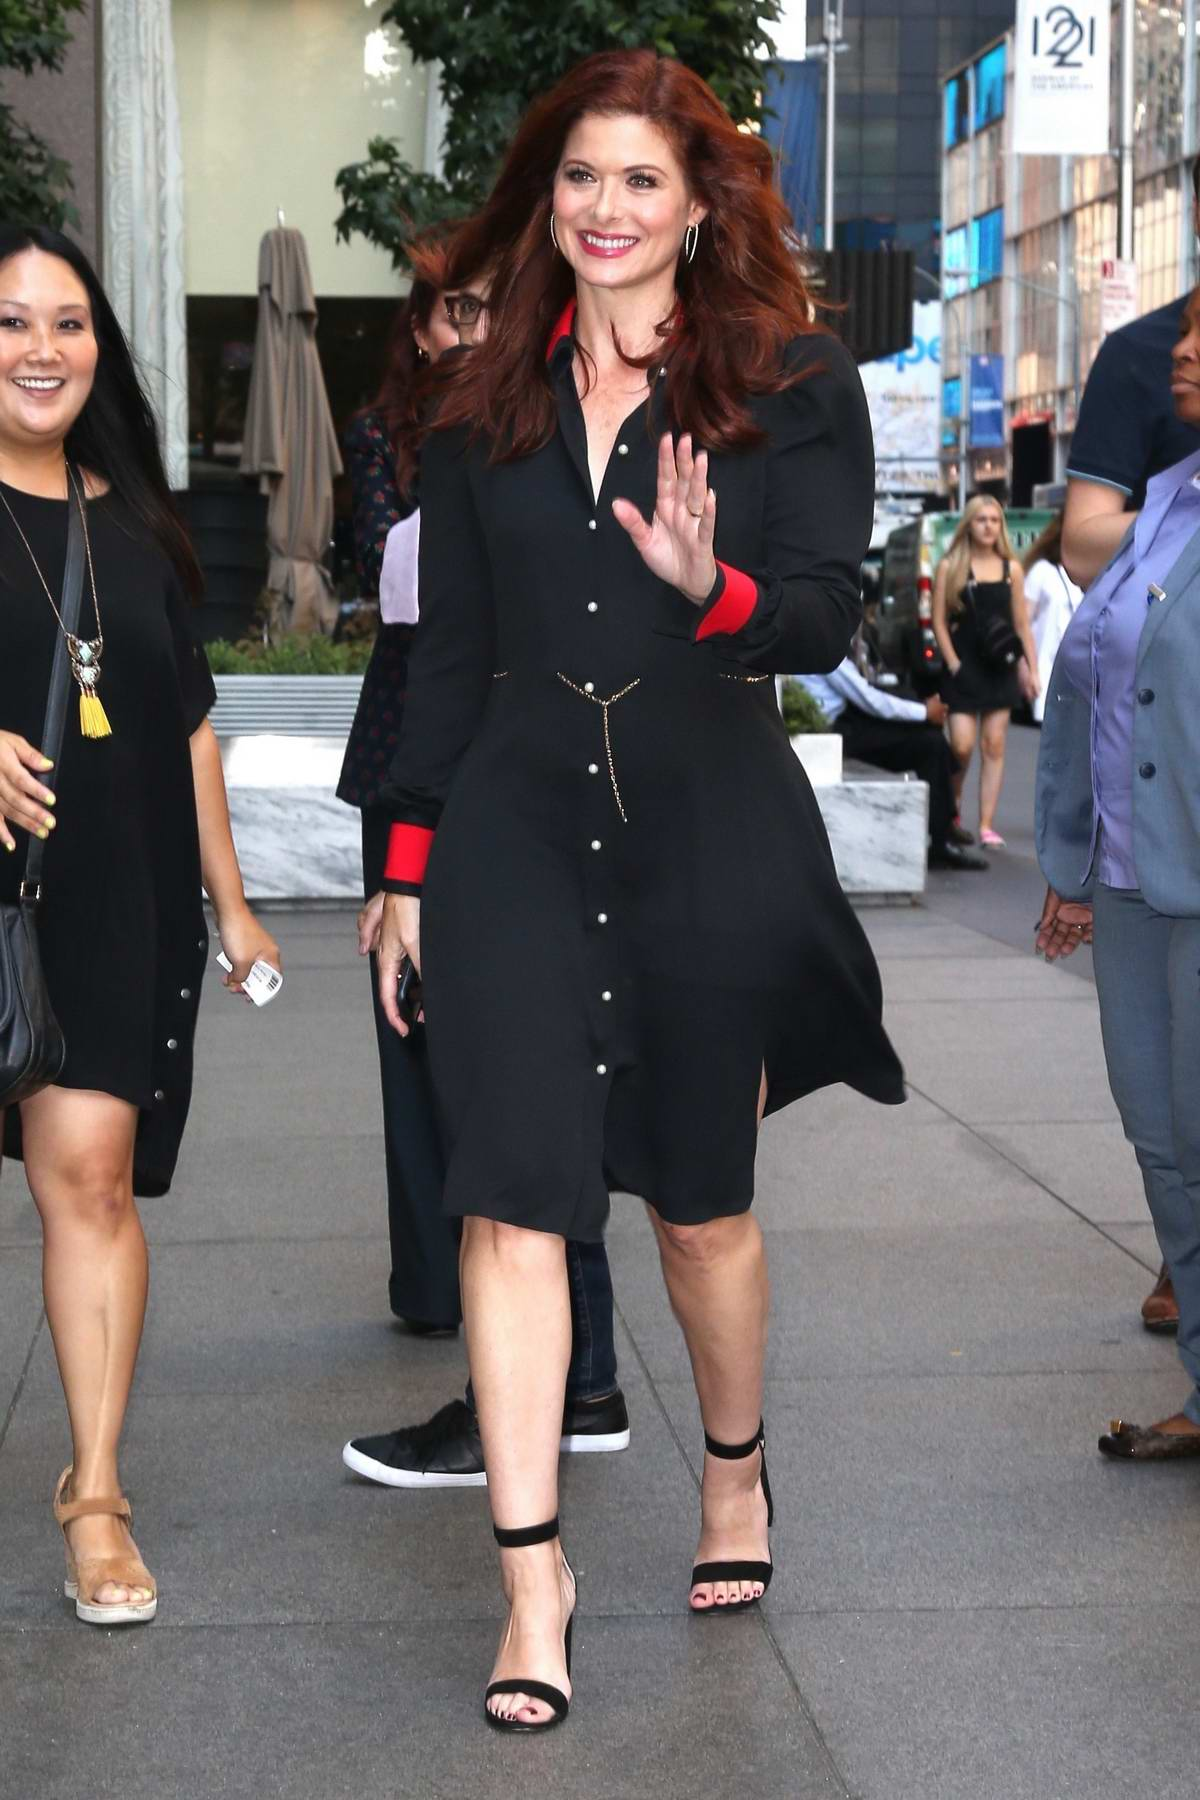 Debra Messing head to SiriusXM Radio to promote the reboot of Will & Grace in New York